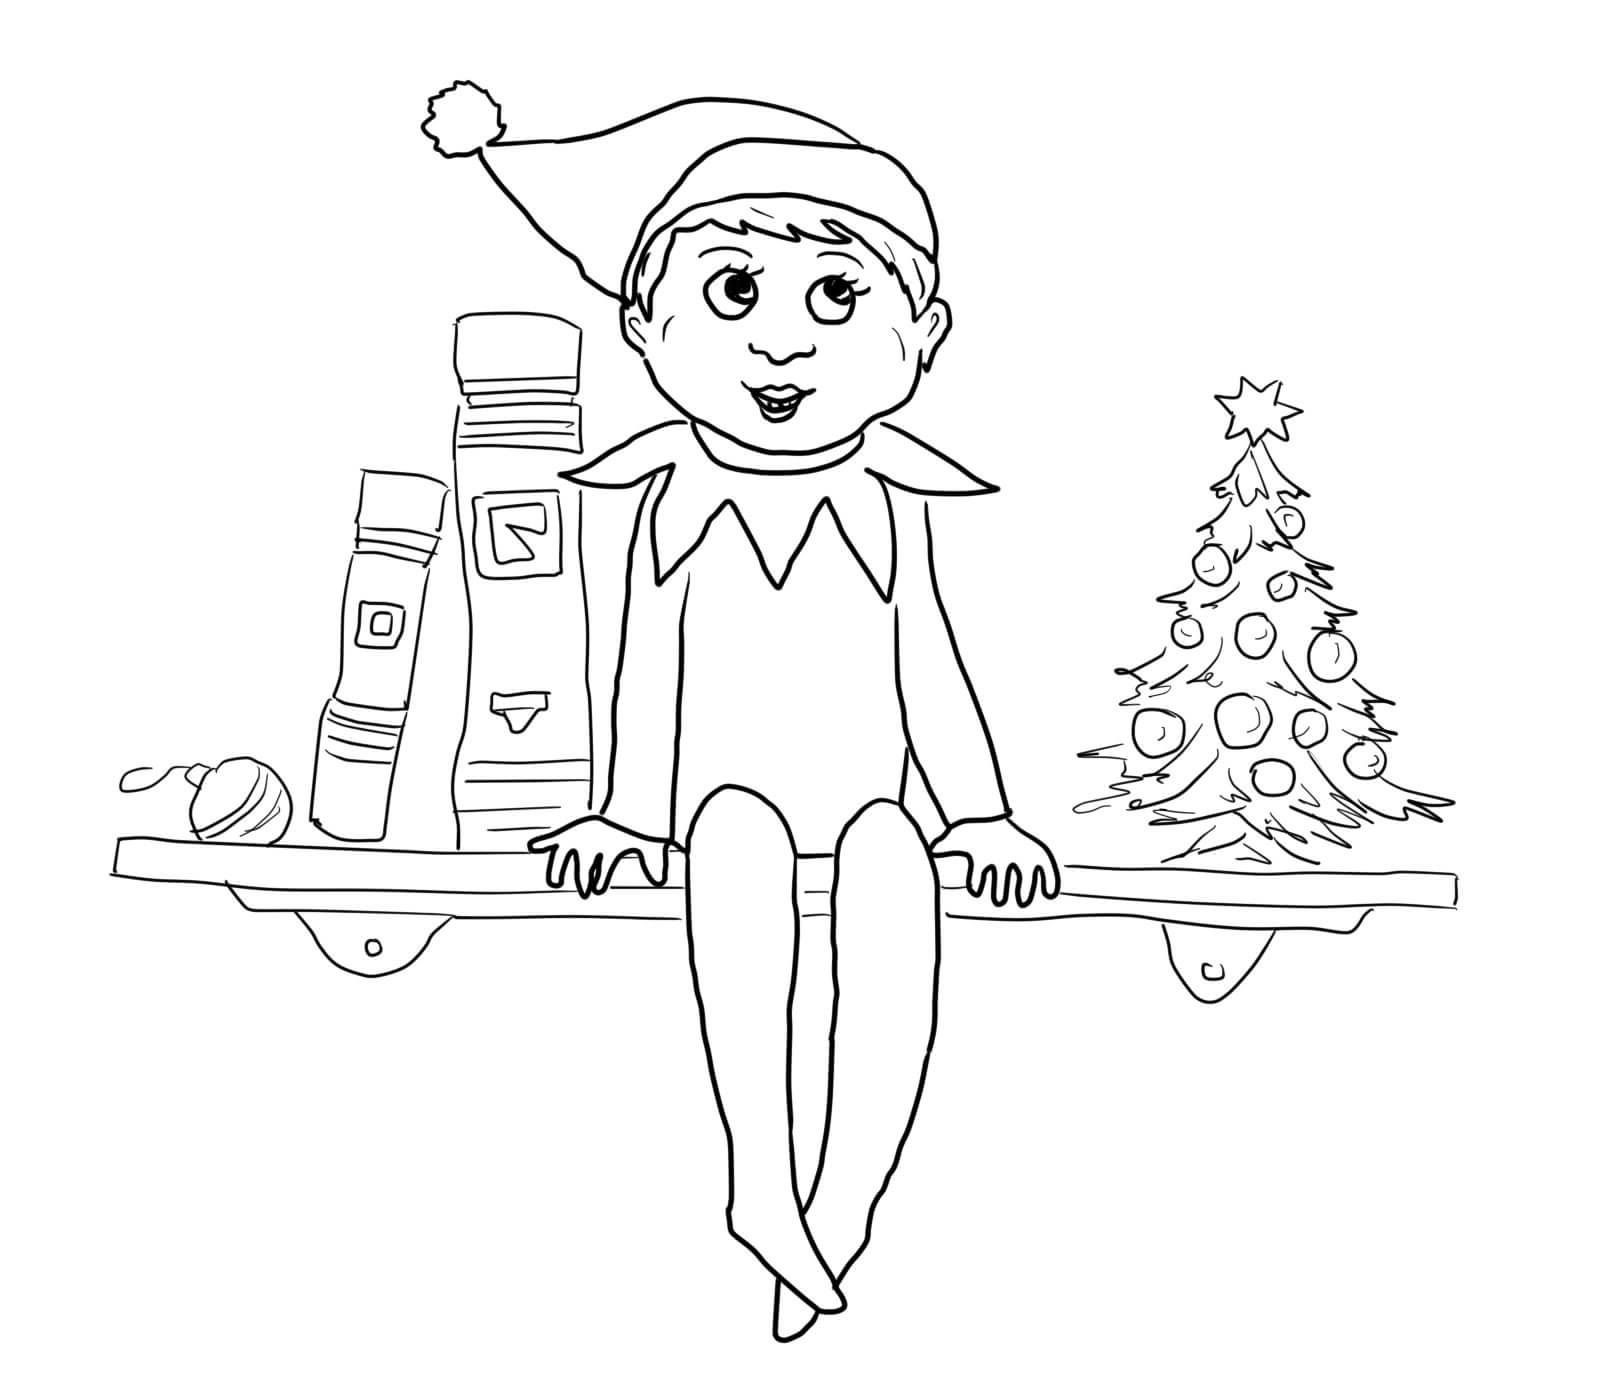 elf on the shelf pictures to color elf on the shelf coloring pages coloring pages for kids to elf pictures color on the shelf